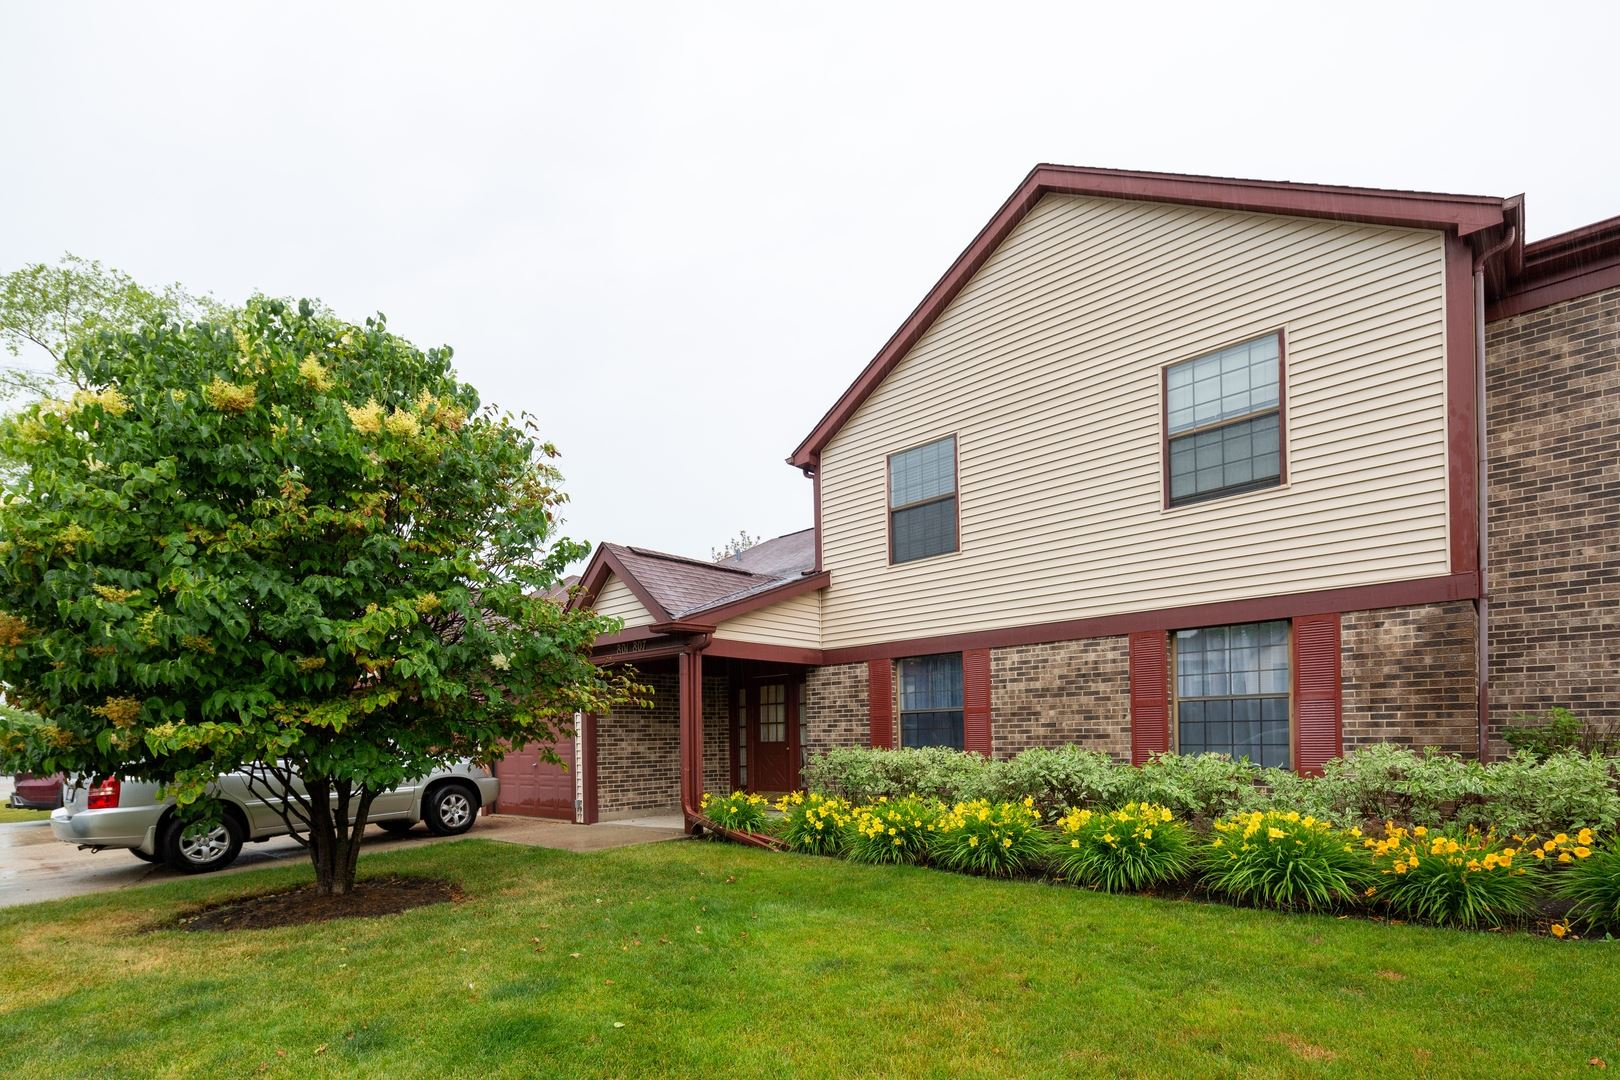 801 Weidner Court S #801, Buffalo Grove, IL 60089 - #: 10762489